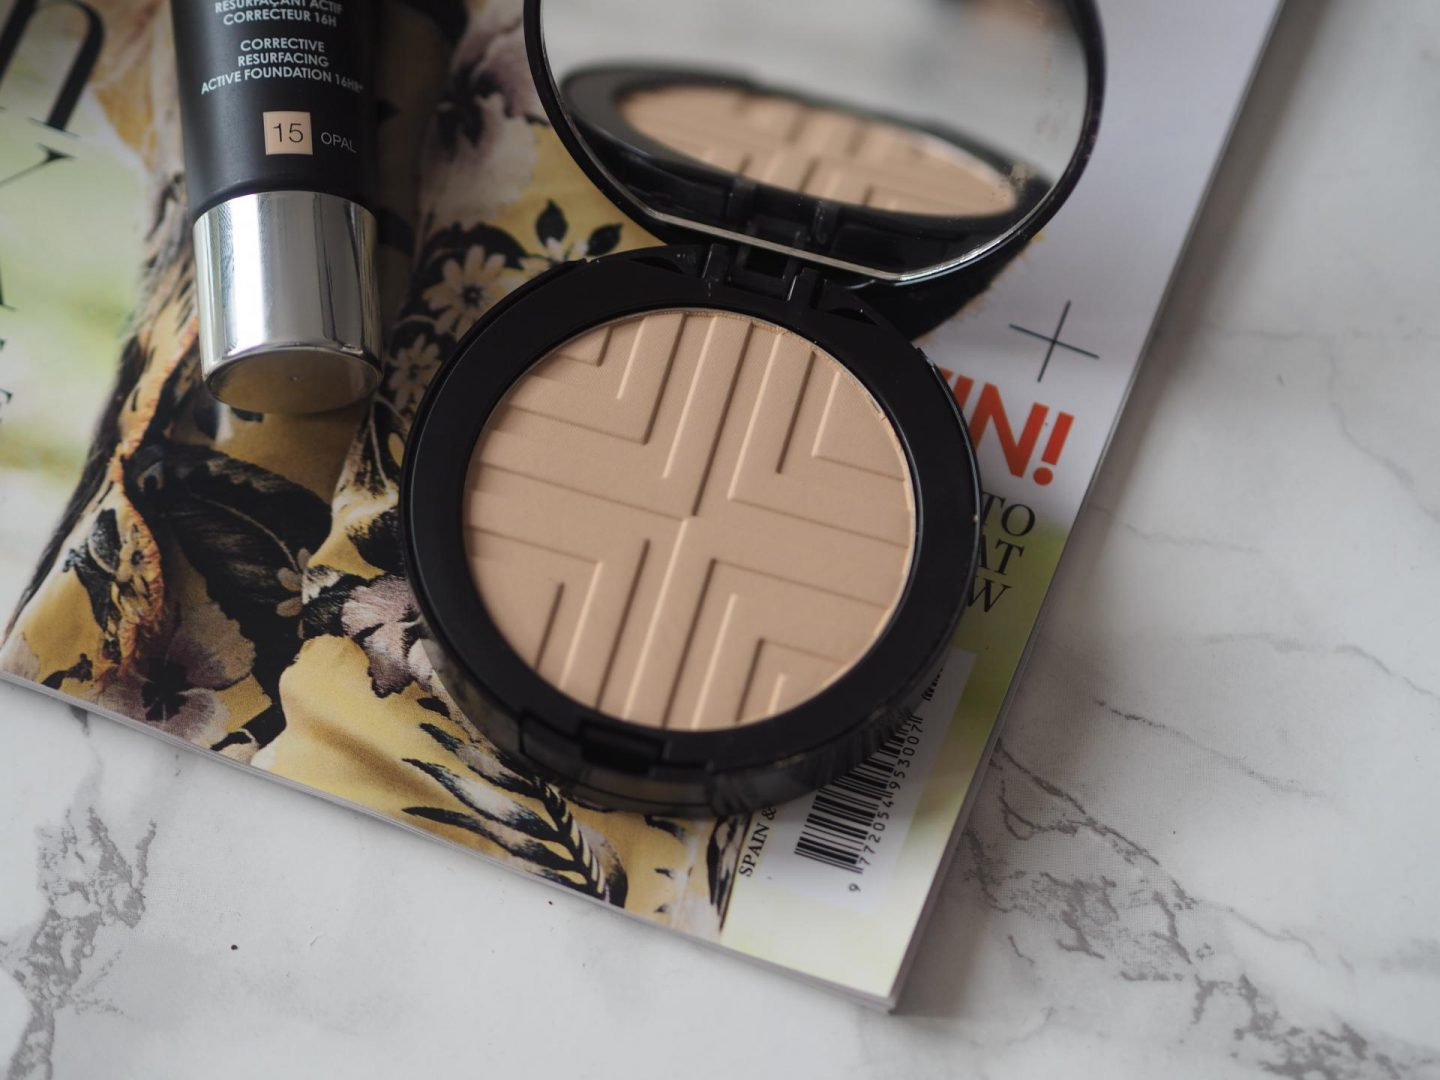 Best Long-Lasting Foundations - Product: Vichy Dermablend Cover Matte Compact Powder Foundation SPF 25